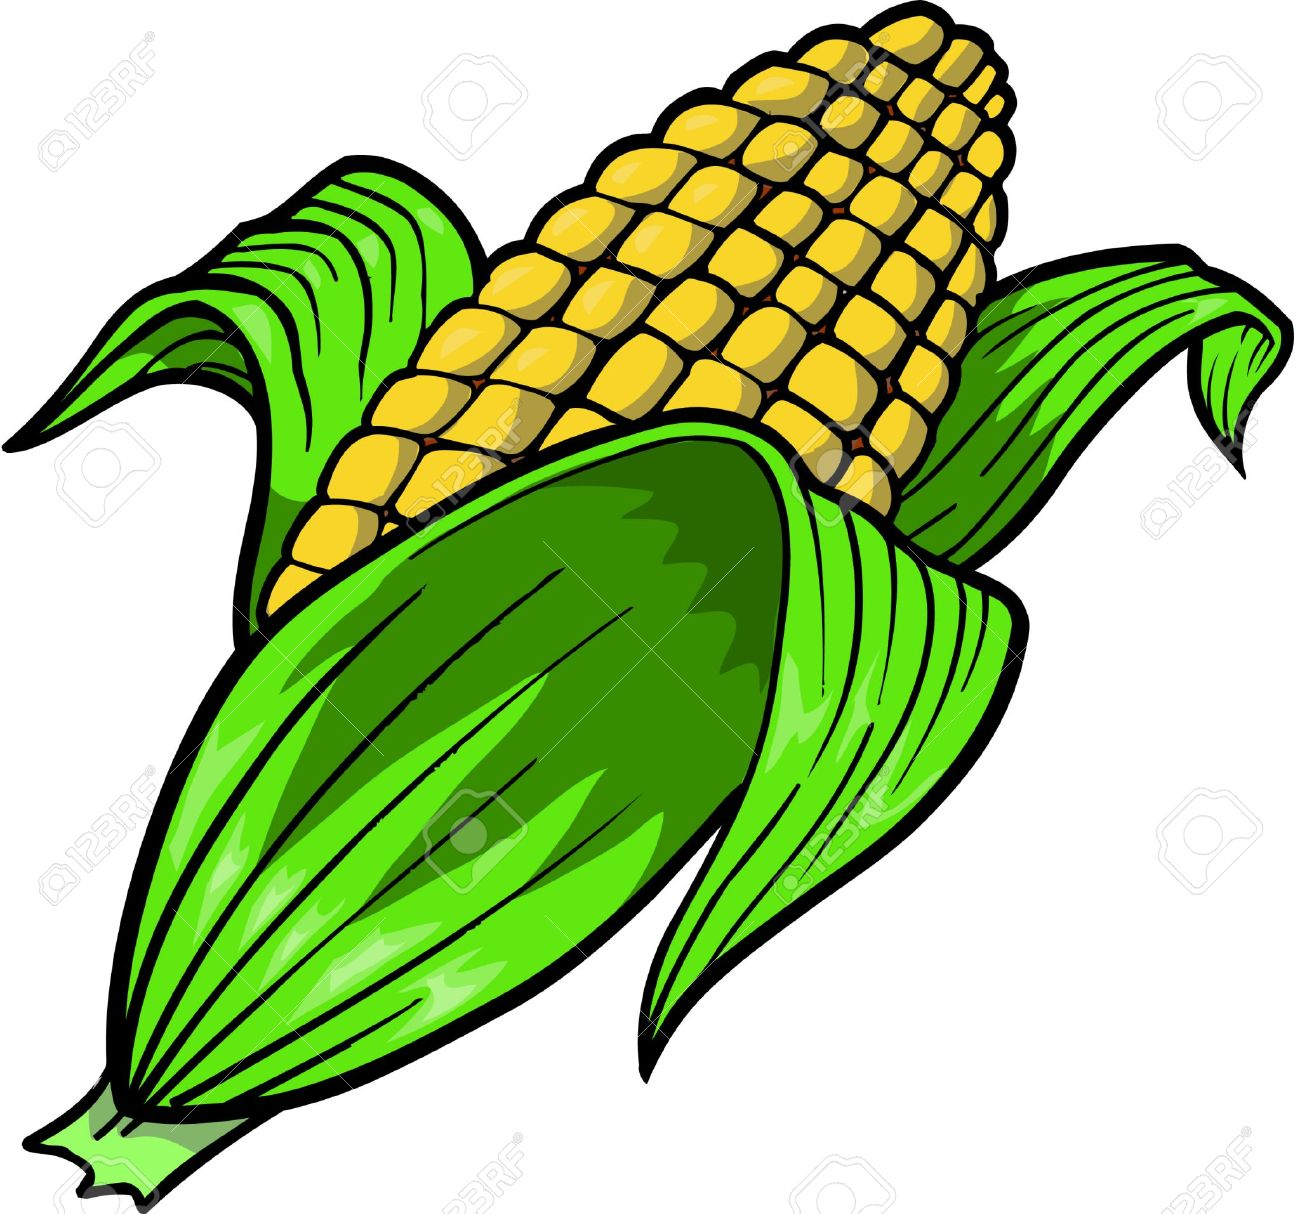 Corn Vector Illustration Stock Illustrations Cliparts And Royalty